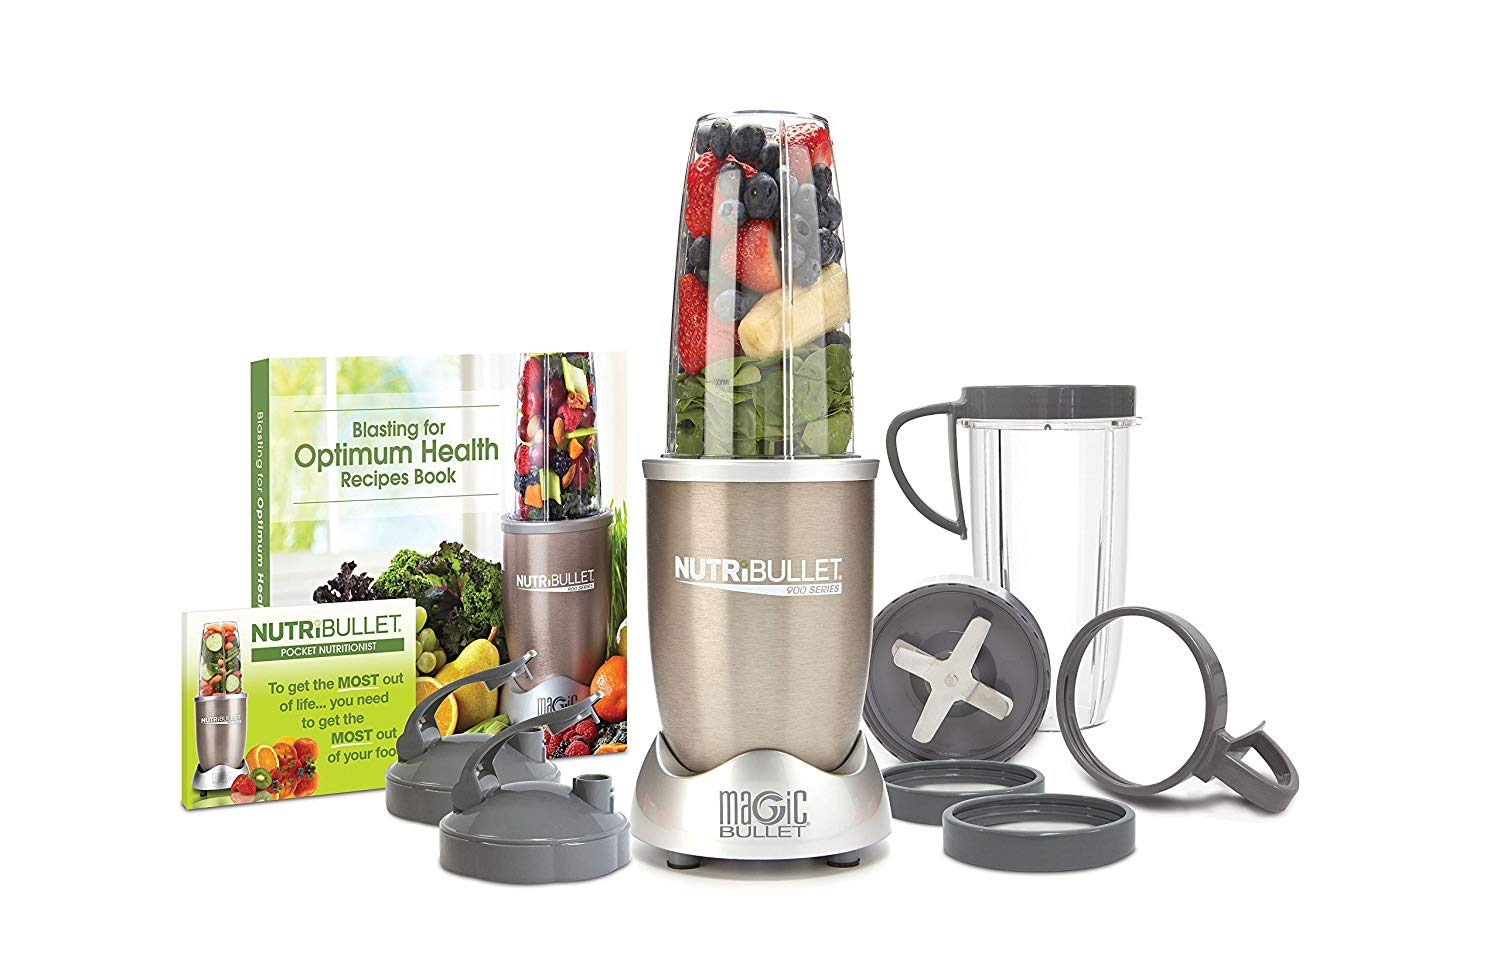 NutriBullet Pro - 13-Piece High-Speed Blender/Mixer System with Hardcover Recipe Book